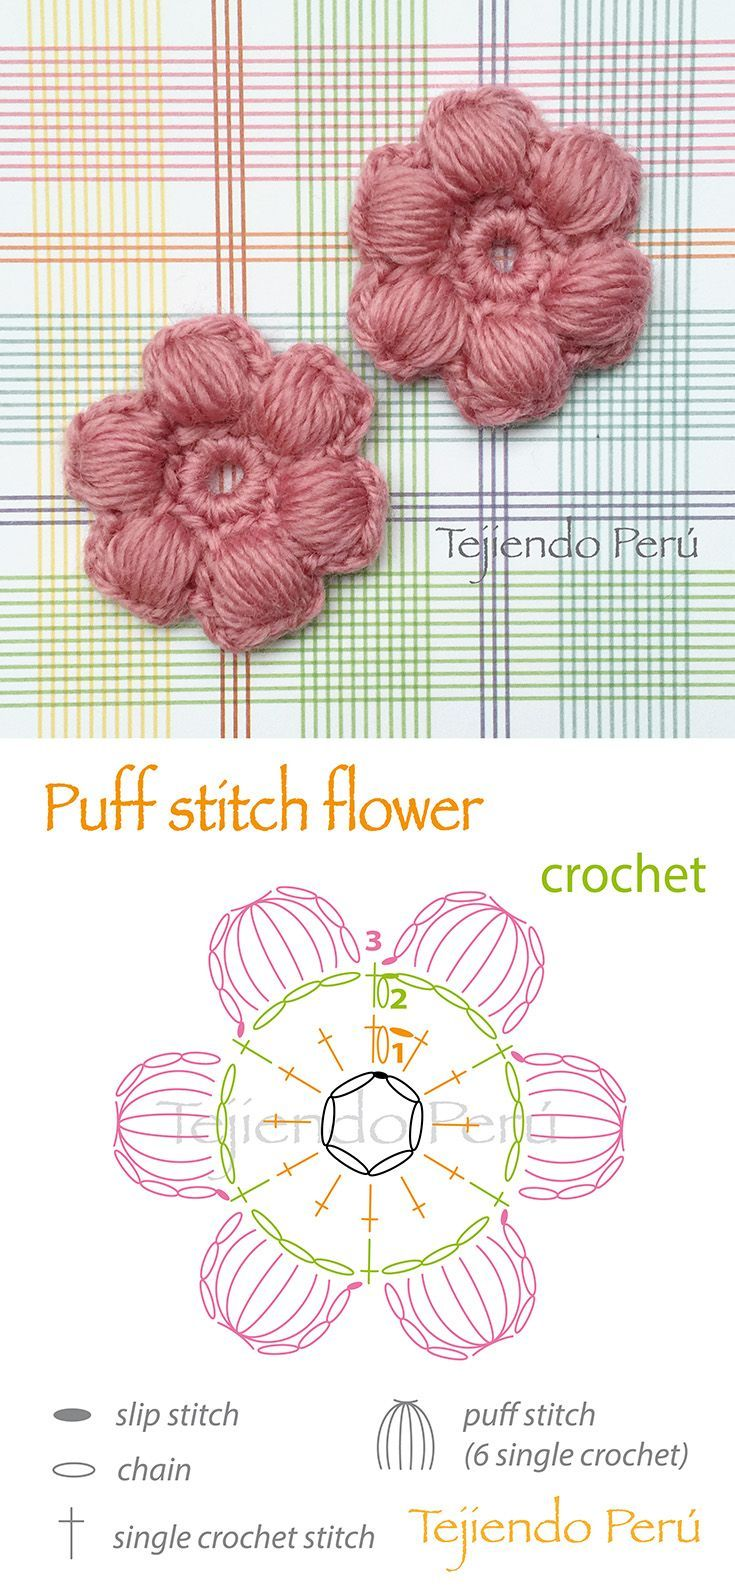 Crochet: puff stitch flower diagram!